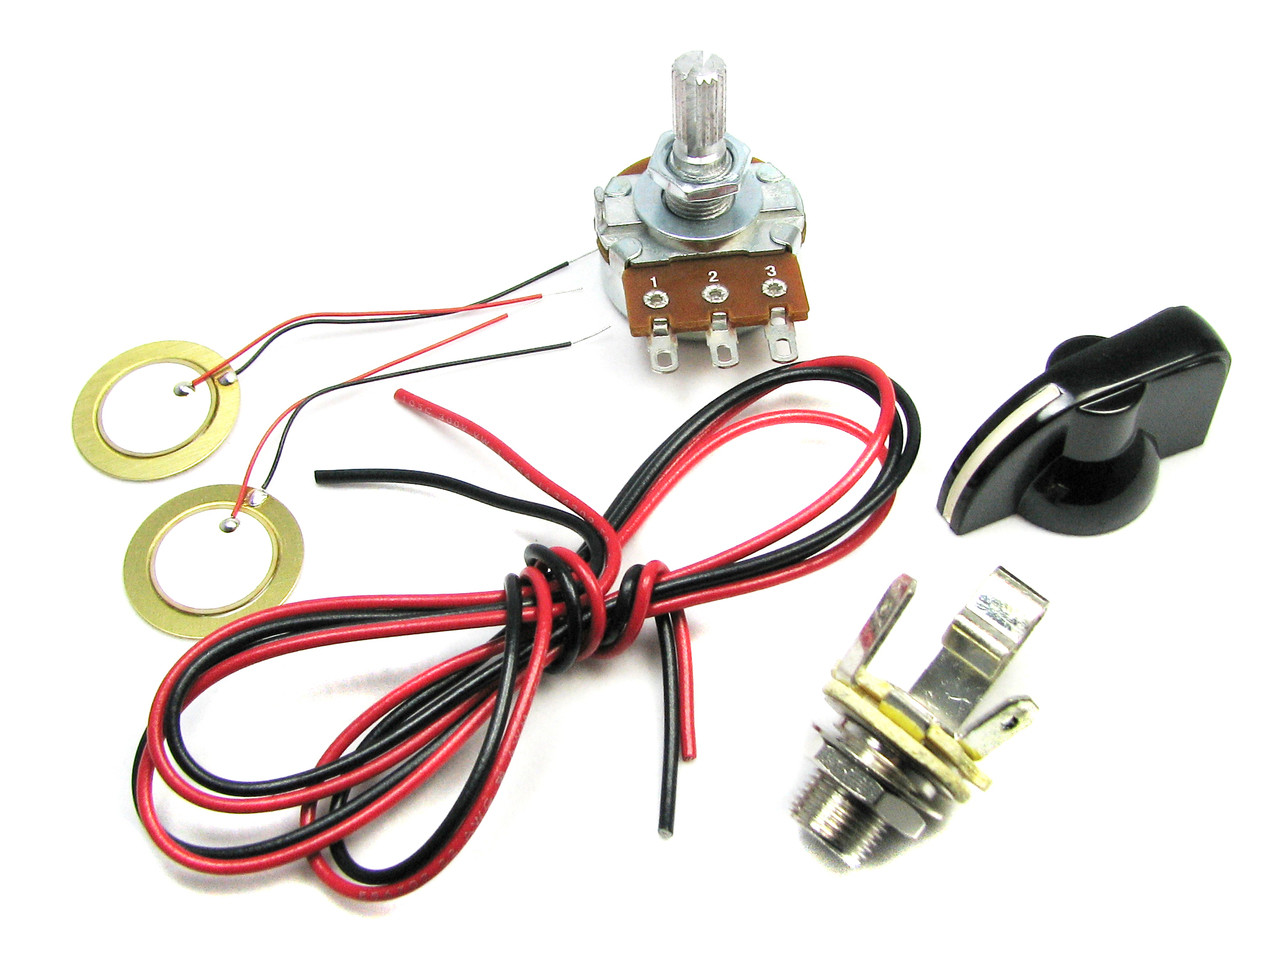 Basic Piezo Pickup Kit For Cigar Box Guitar Instructions Included Wiring Diagram Two Humbuckers And